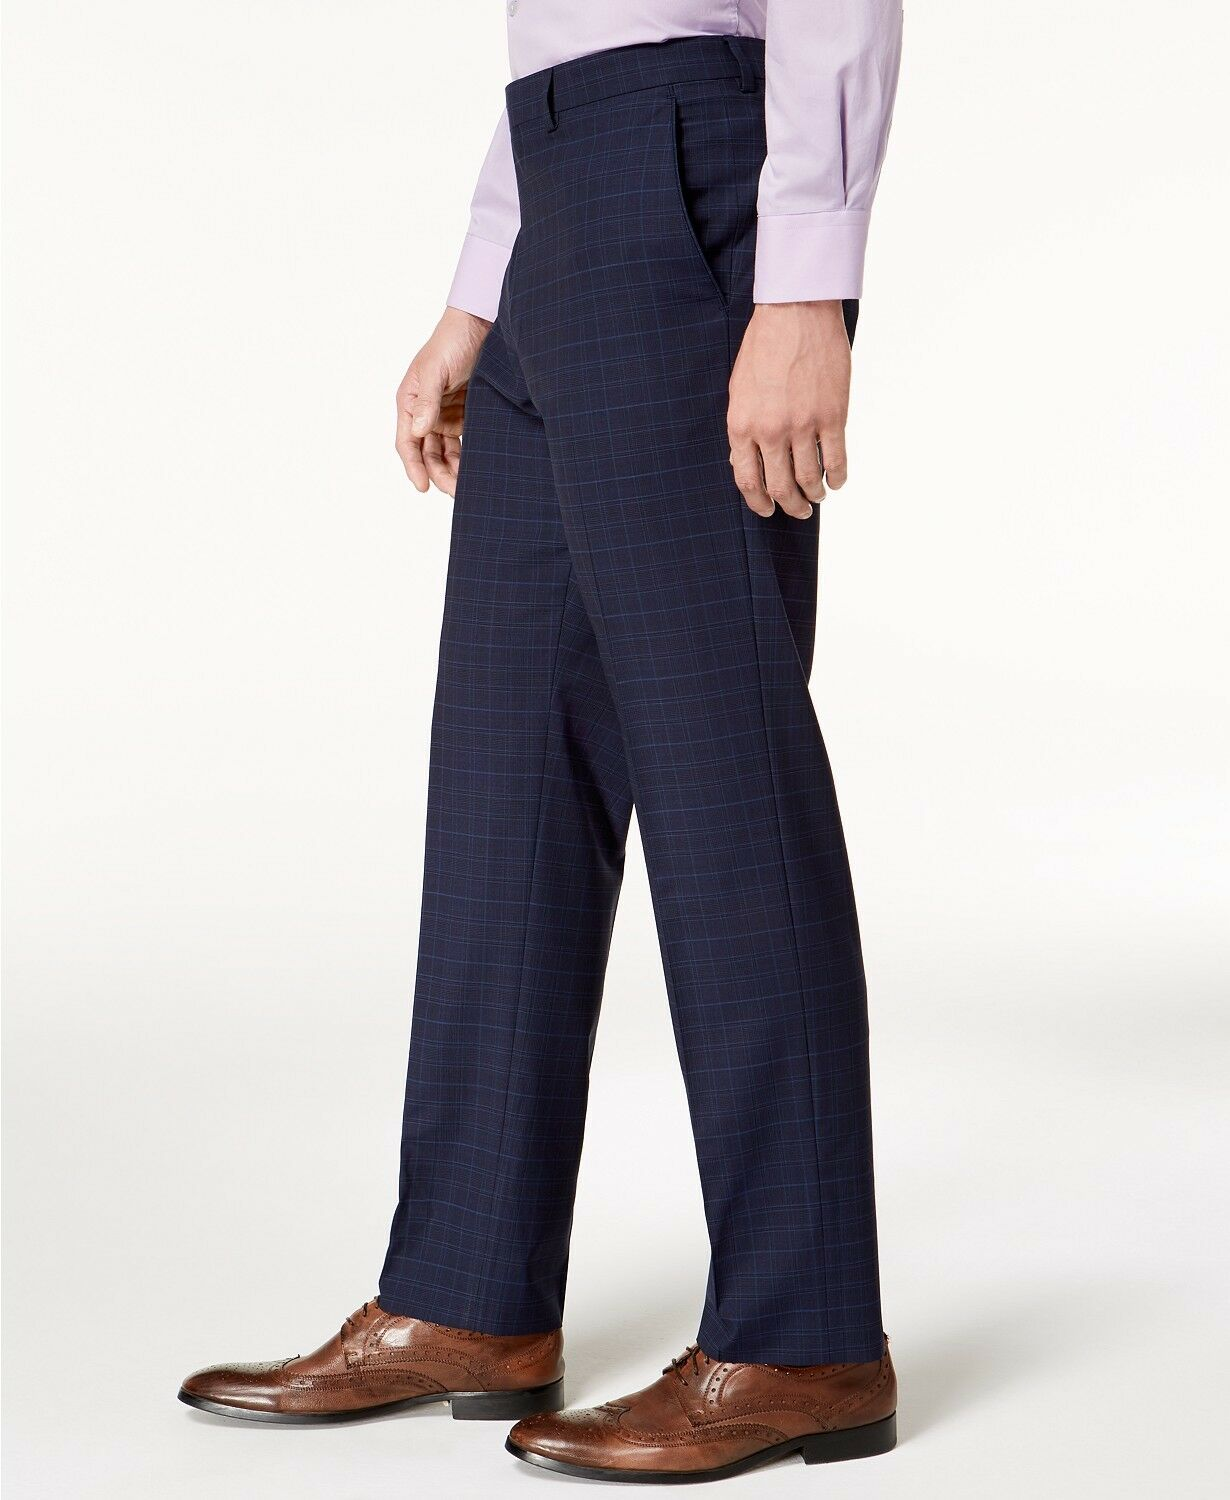 VINCE CAMUTO Men's blueE PLAID SLIM FIT TROUSERS FLAT FRONT DRESS PANTS 31W